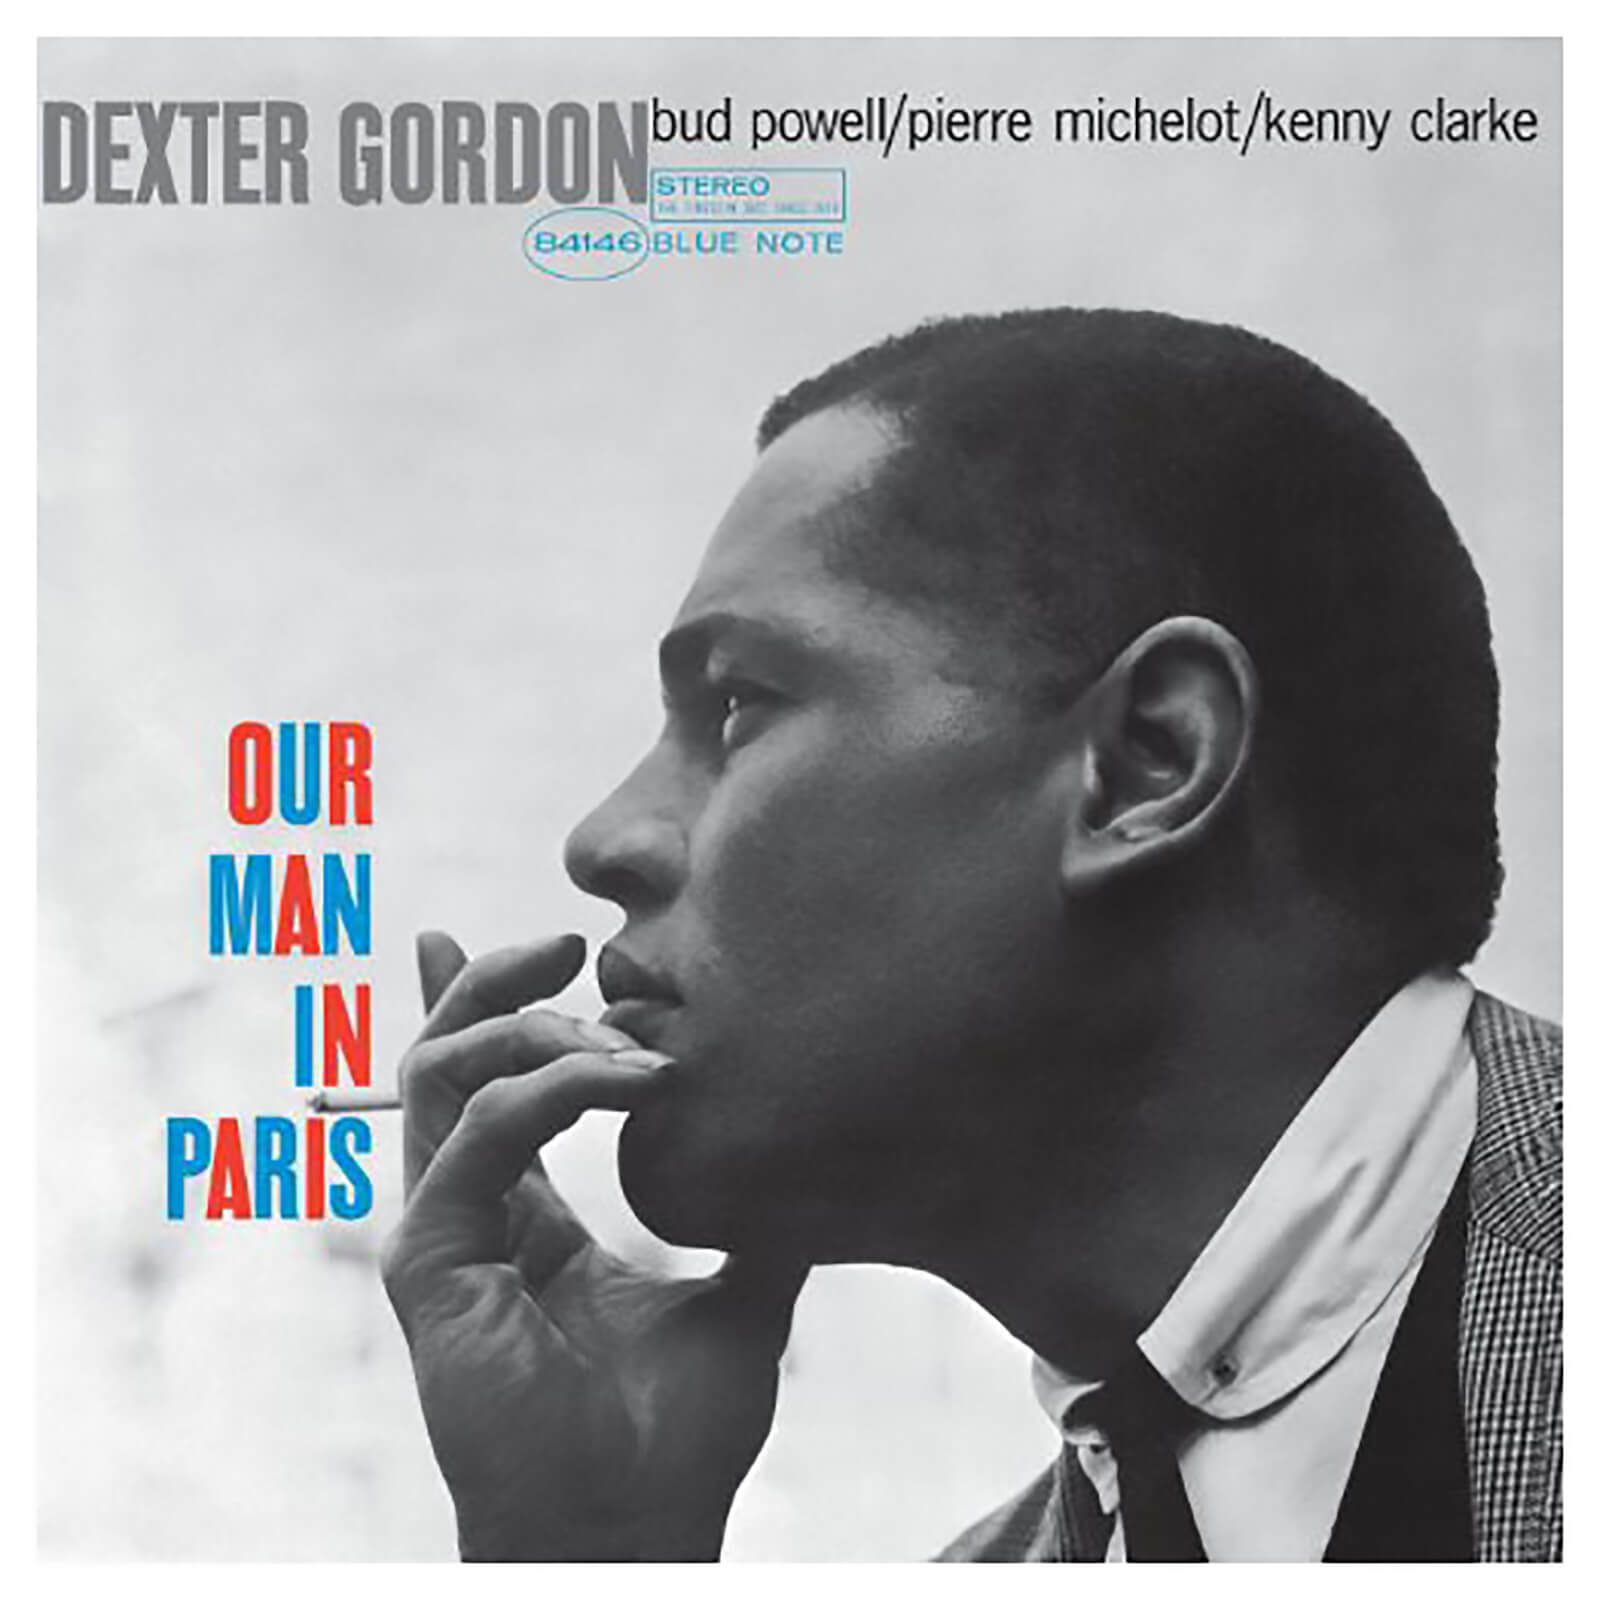 Dexter Gordon - Our Man In Paris - Vinyl